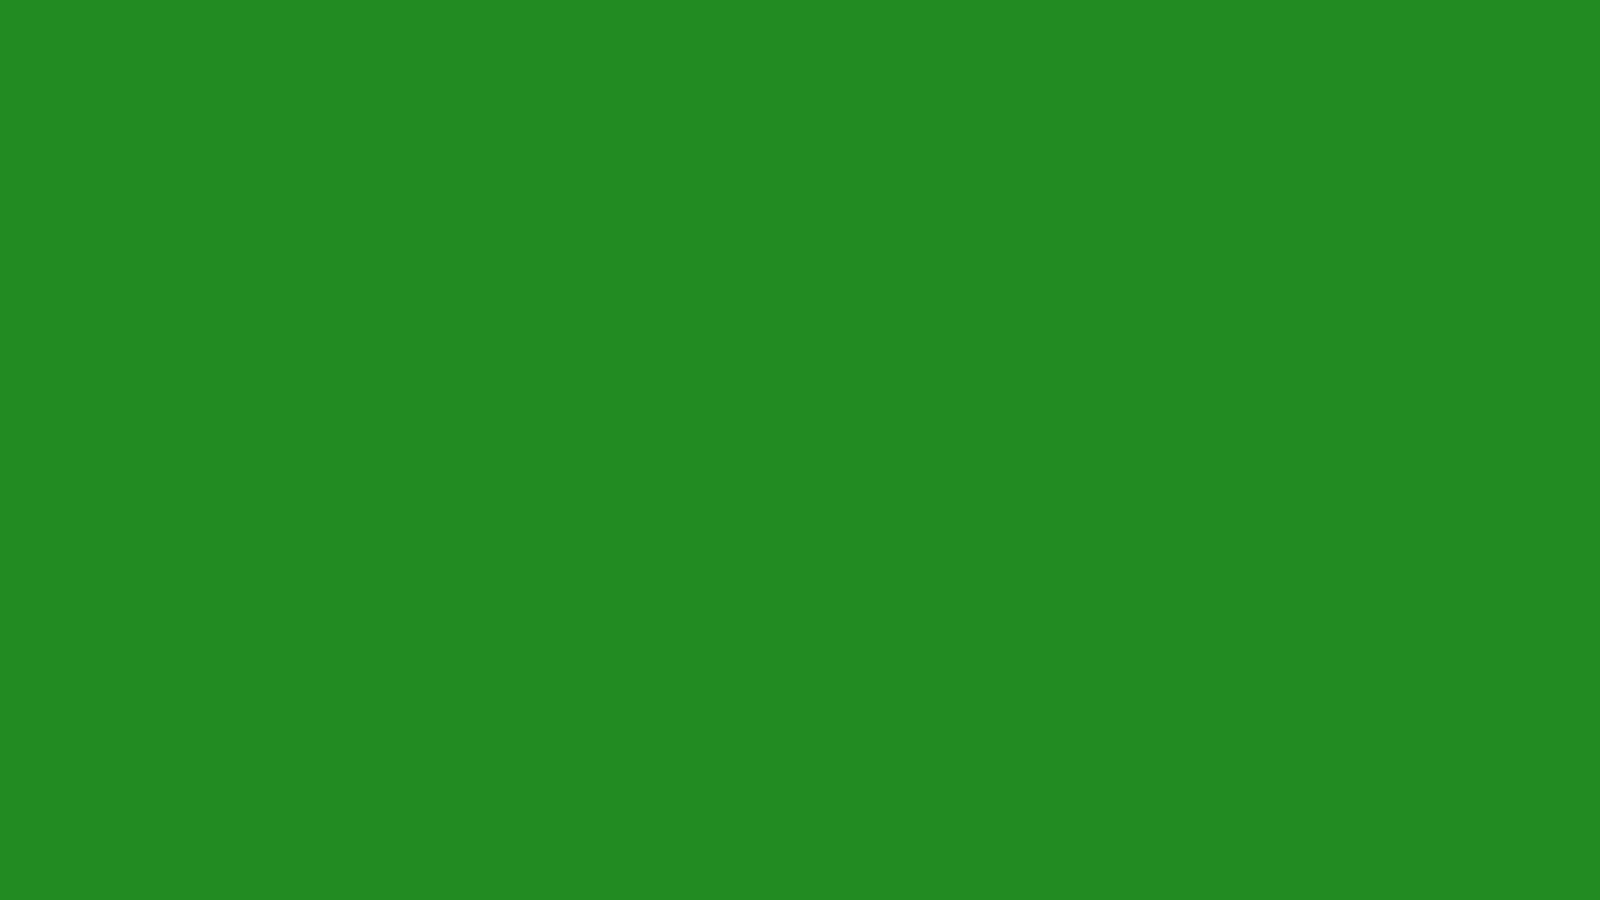 1600x900 Forest Green For Web Solid Color Background